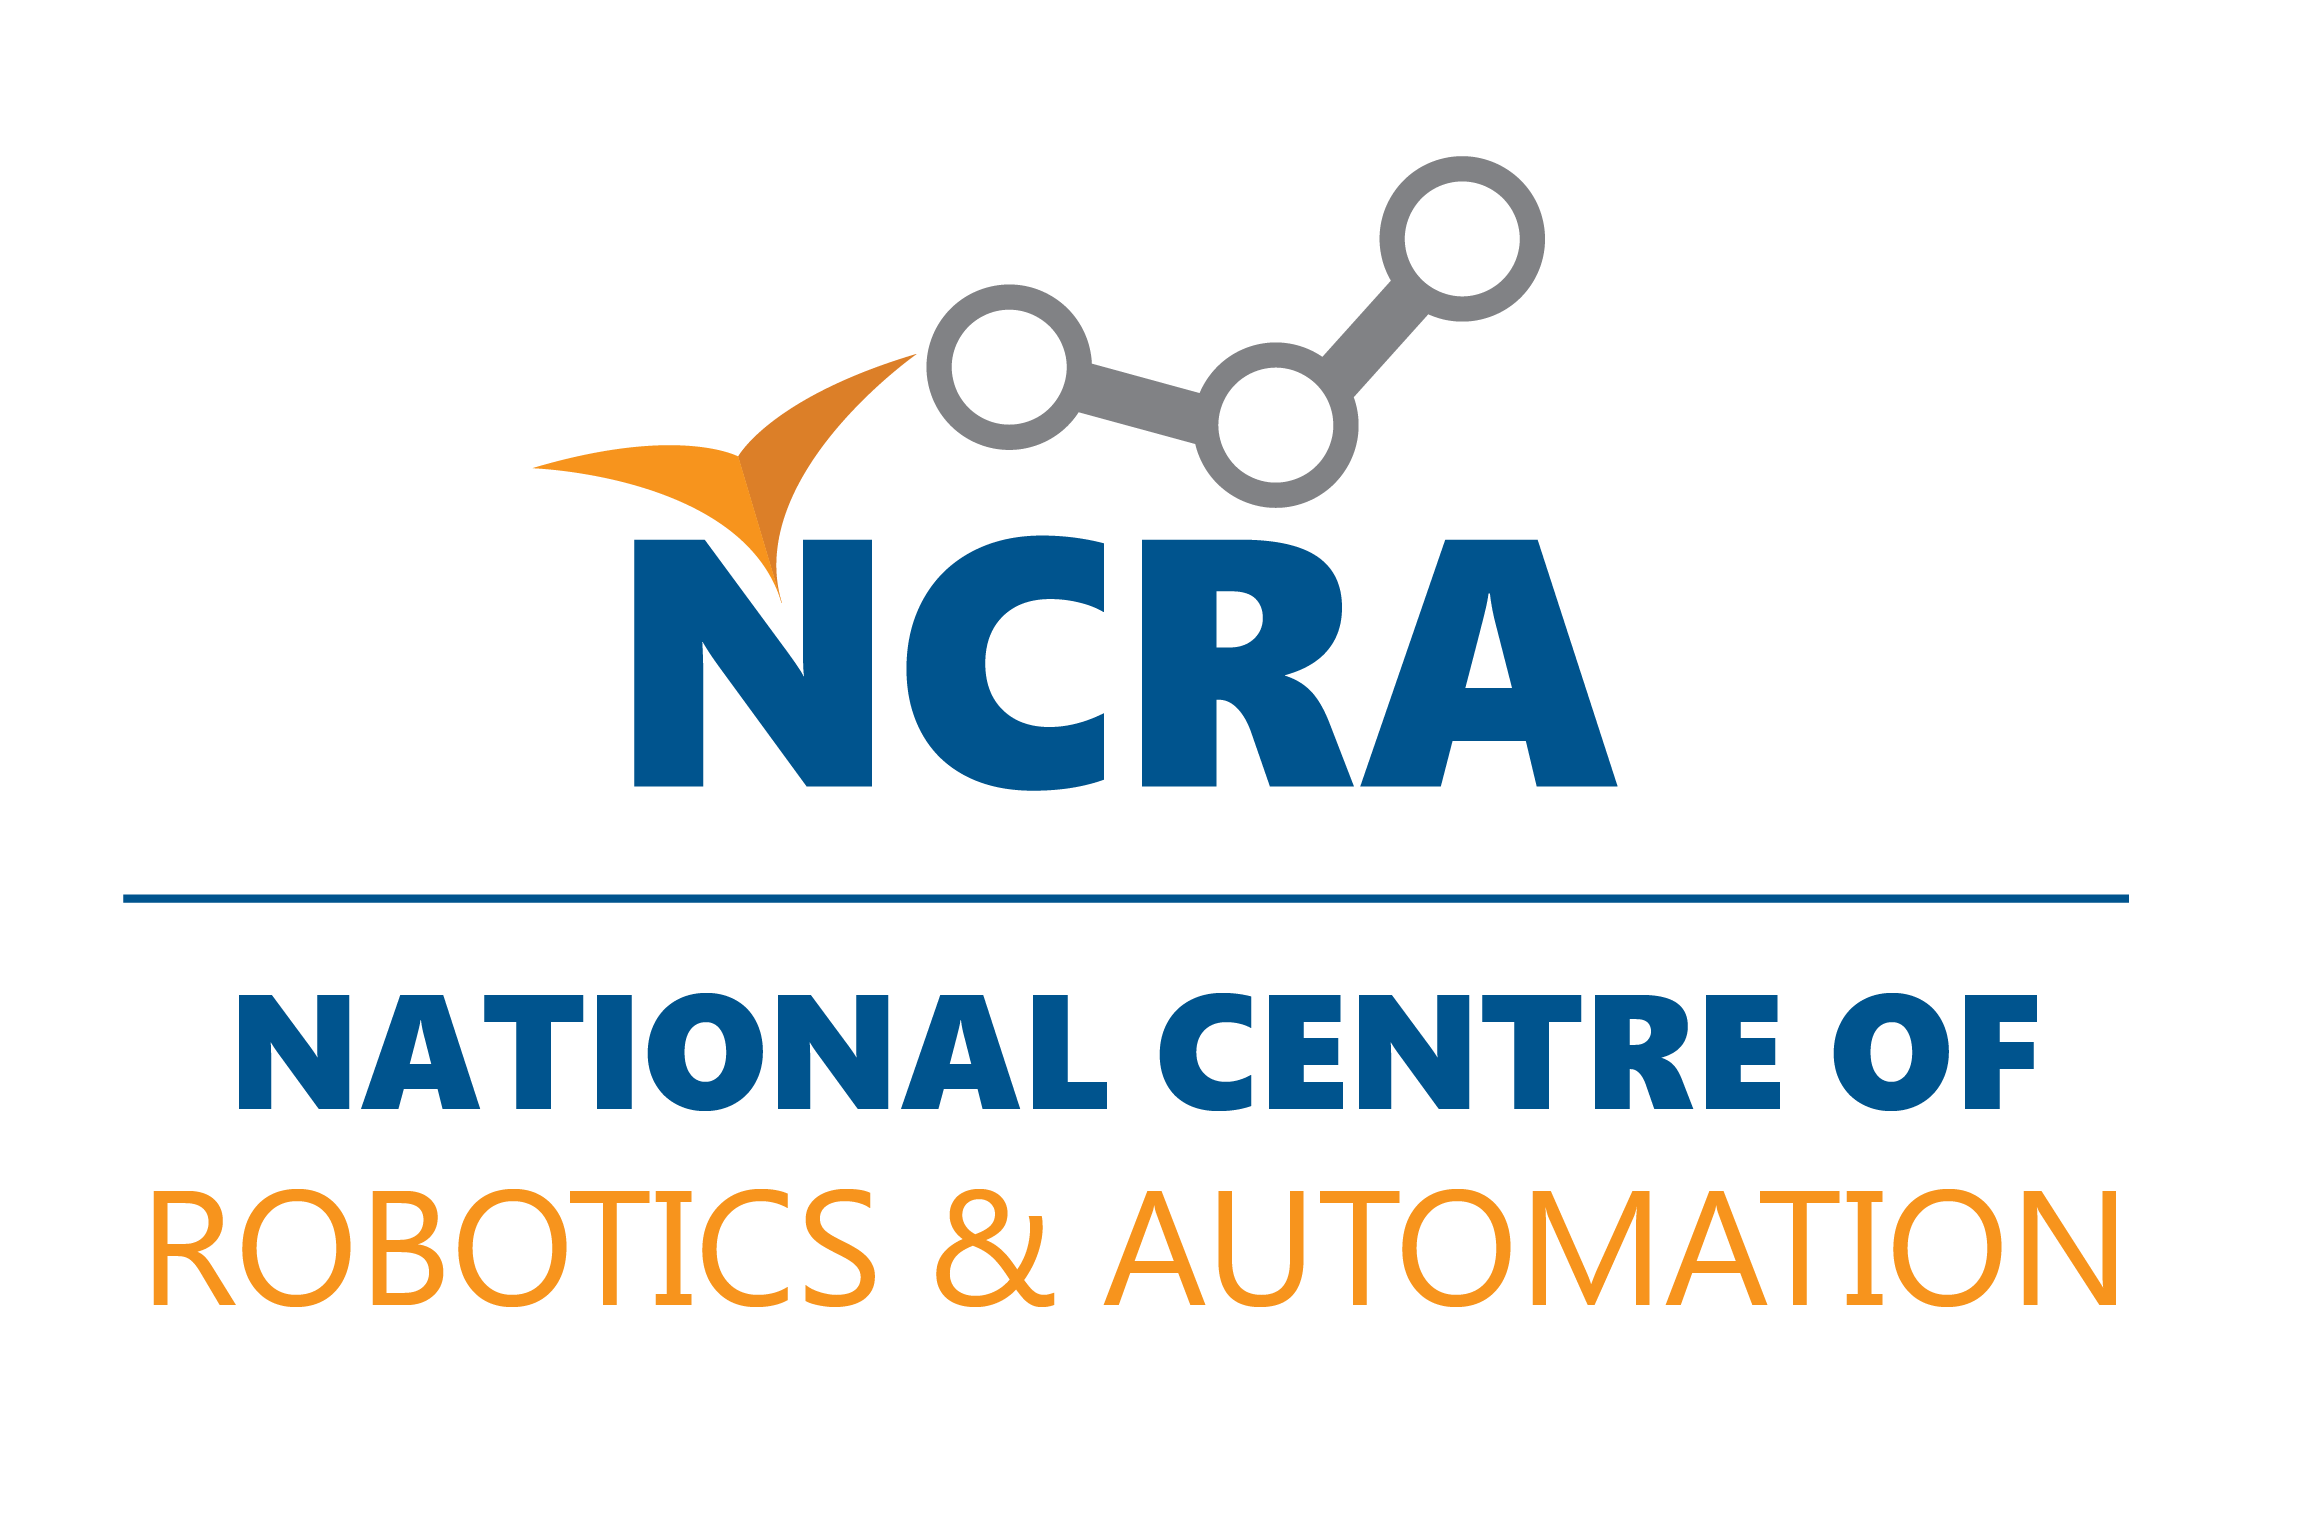 NCRA - National Center of Robotics and Automation